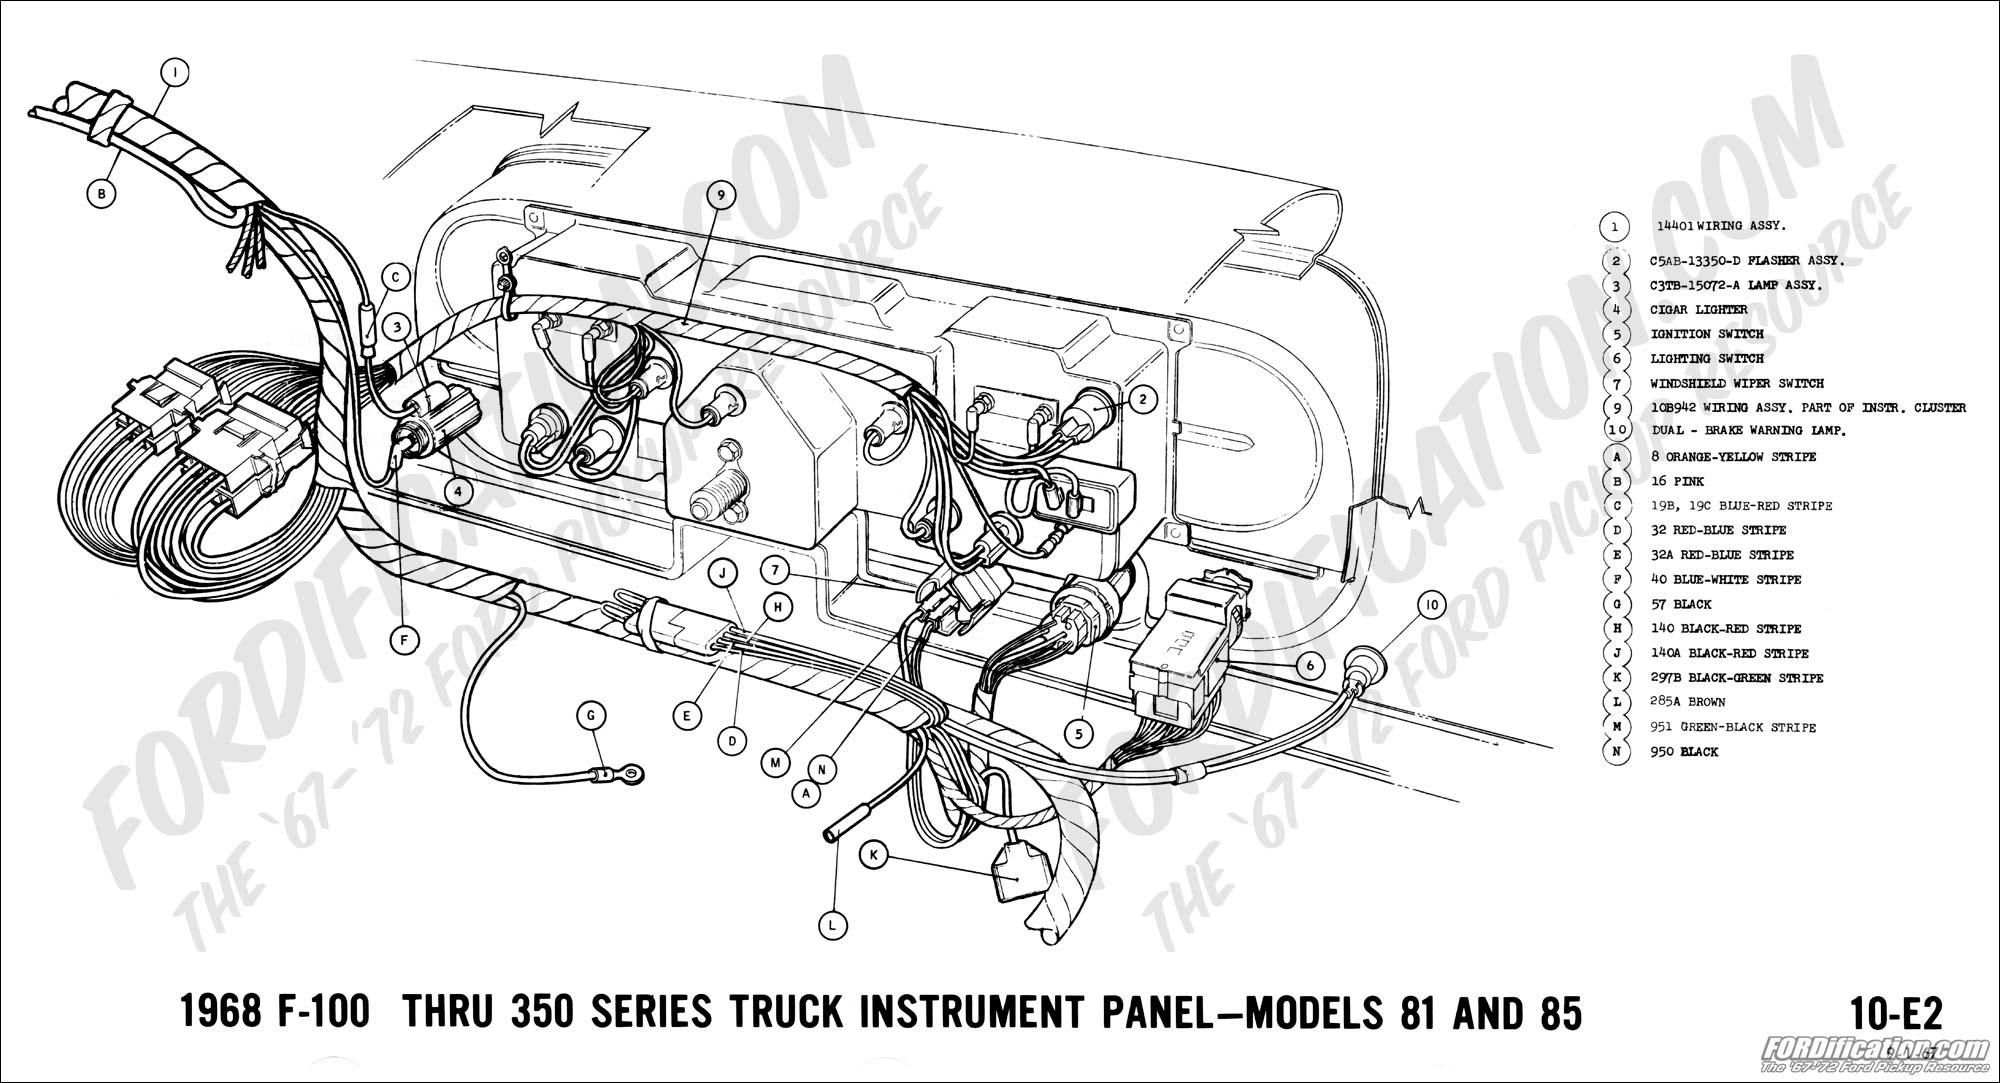 84 corvette front suspension, c4 corvette diagrams, 84 corvette fuse diagram, corvette electrical diagrams, 84 corvette fuel pump relay diagram, 84 corvette owners manual, 84 corvette charging system, 84 corvette wiring harness, 1979 c3 corvette diagrams, 84 corvette exhaust, 84 corvette battery, 84 corvette chassis, corvette schematics diagrams, 84 corvette parts, 84 corvette problems, 84 corvette vacuum diagram, 84 corvette transmission, corvette small block chevy vacuum diagrams, 84 corvette fuel system, 84 corvette seats, on 84 corvette fuel pump wiring diagram schematic